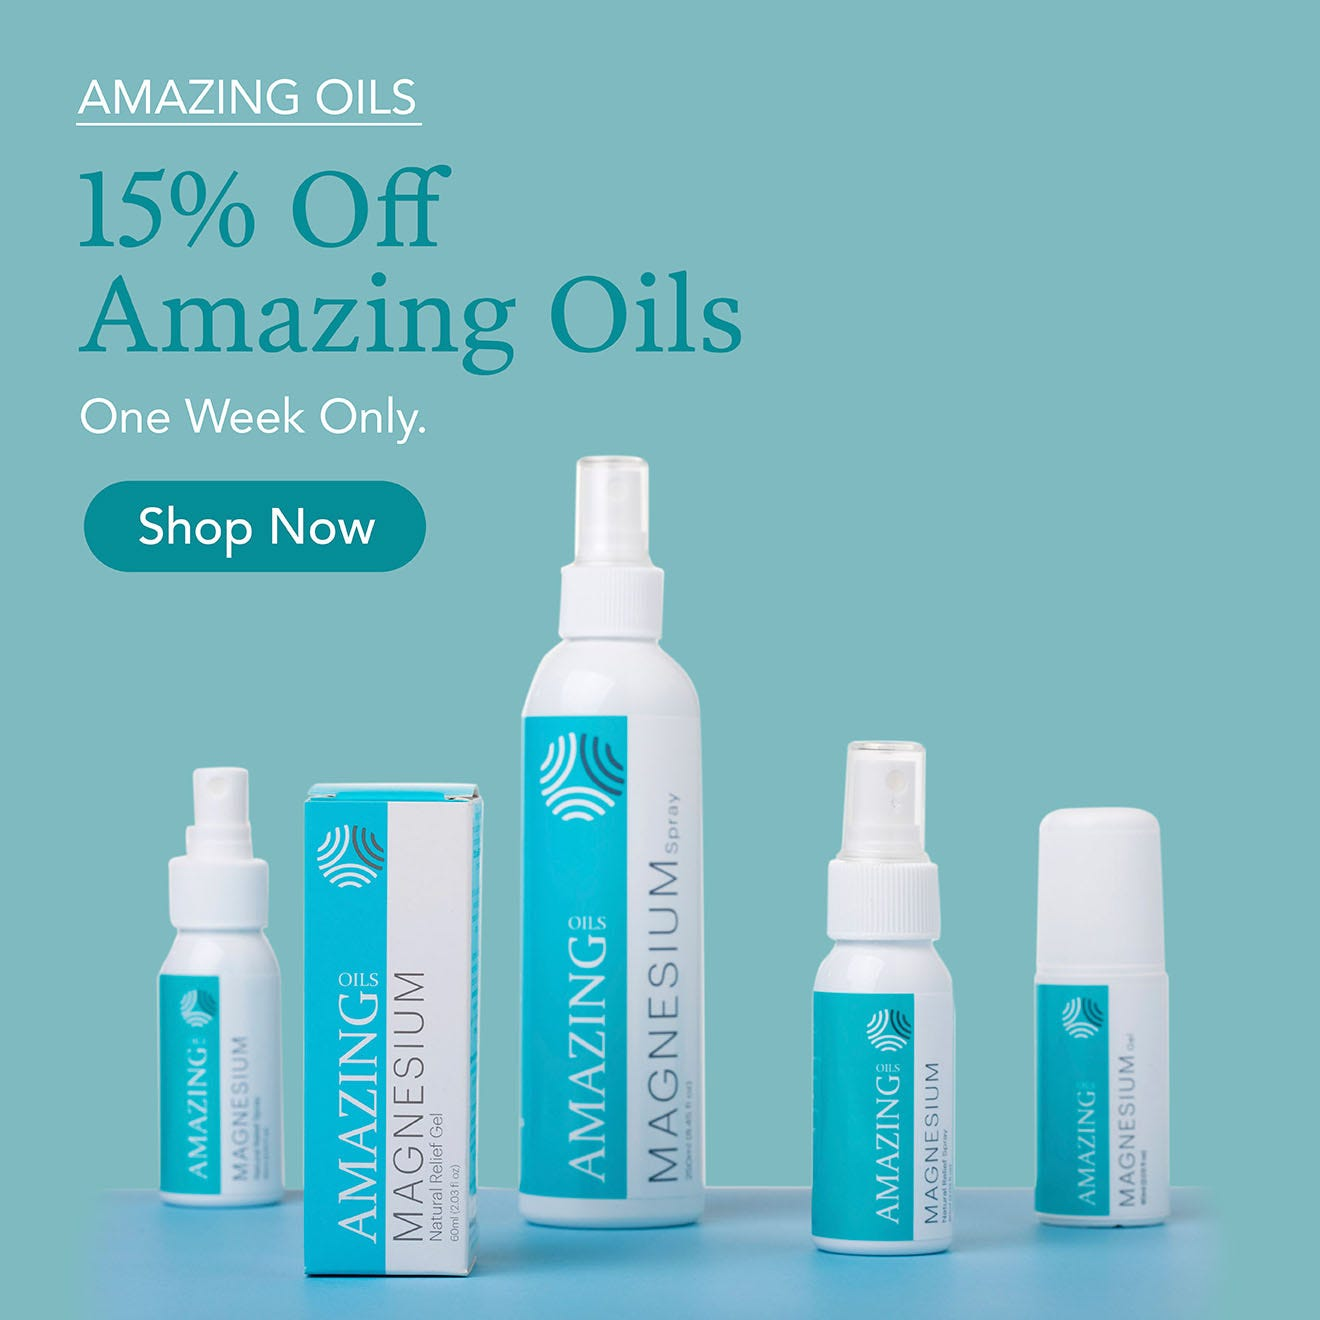 15% off Amazing Oils this week